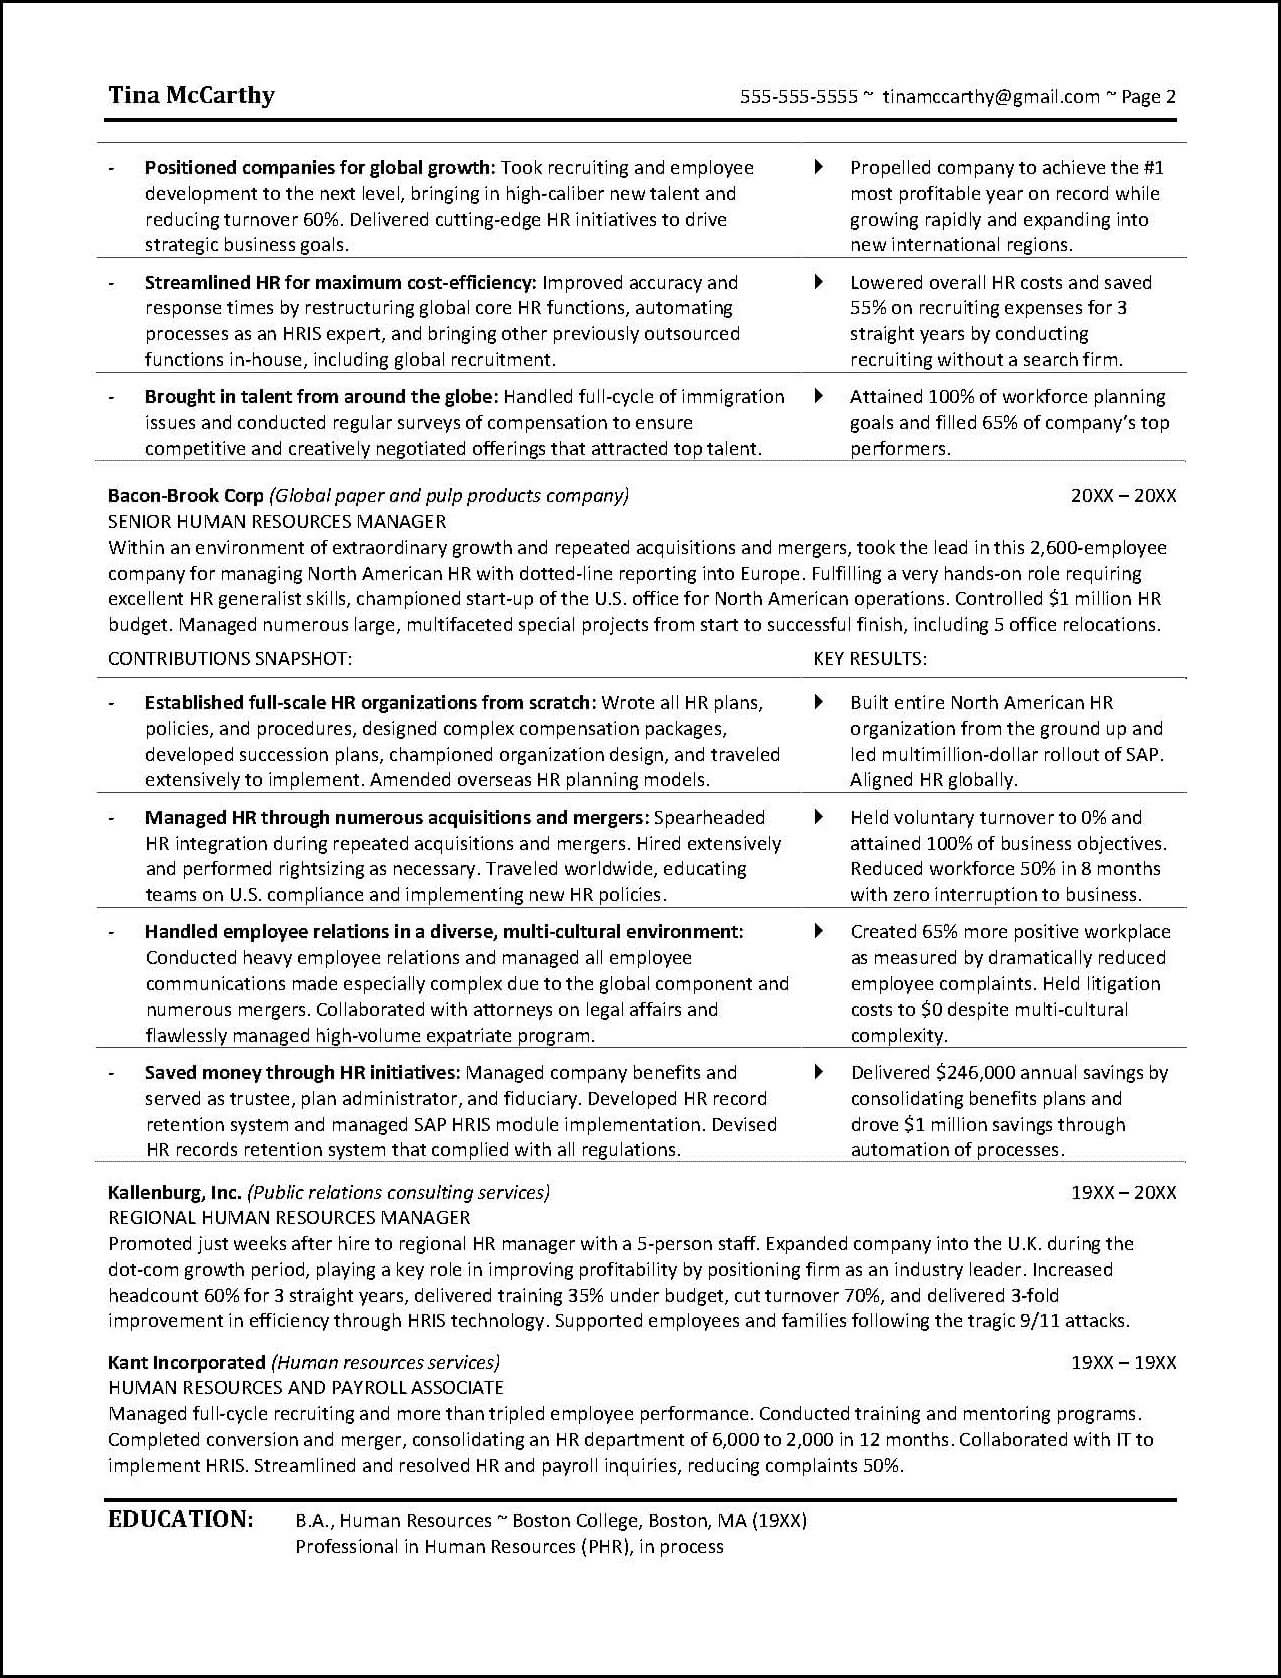 Human Resources Resume Example Powerful Human Resources Resume Example